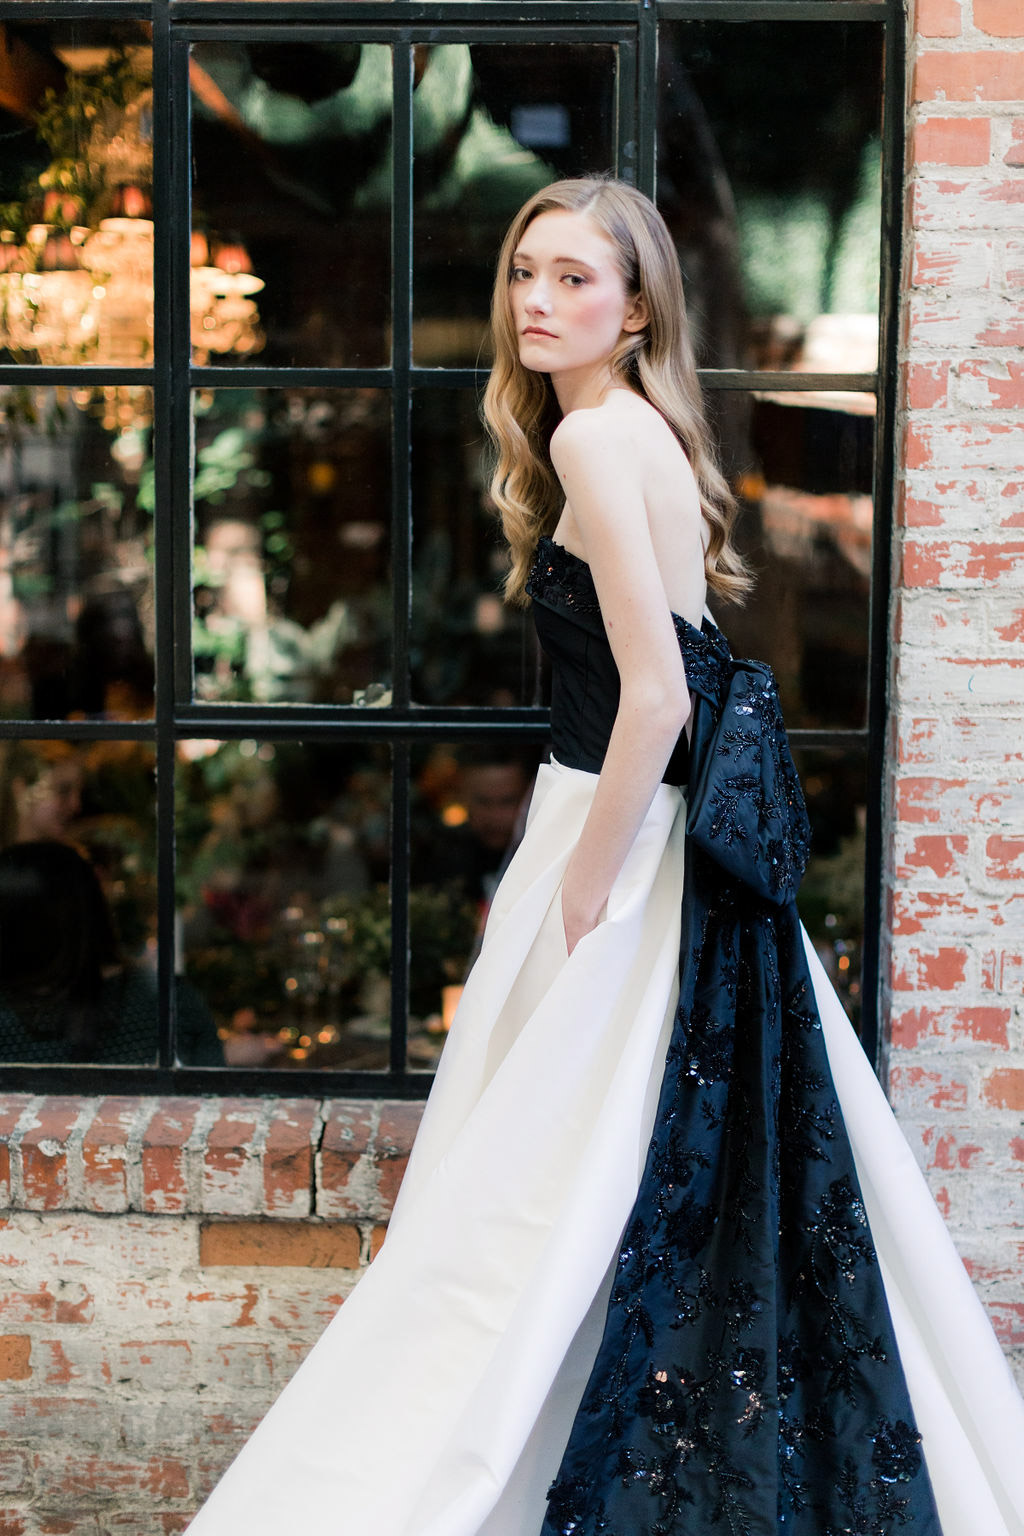 Black and White Kensington dress from the Allison Webb Spring 2019 Bridal Fashion Event in LA, Photo by Jessica Grazia Mangia Photography